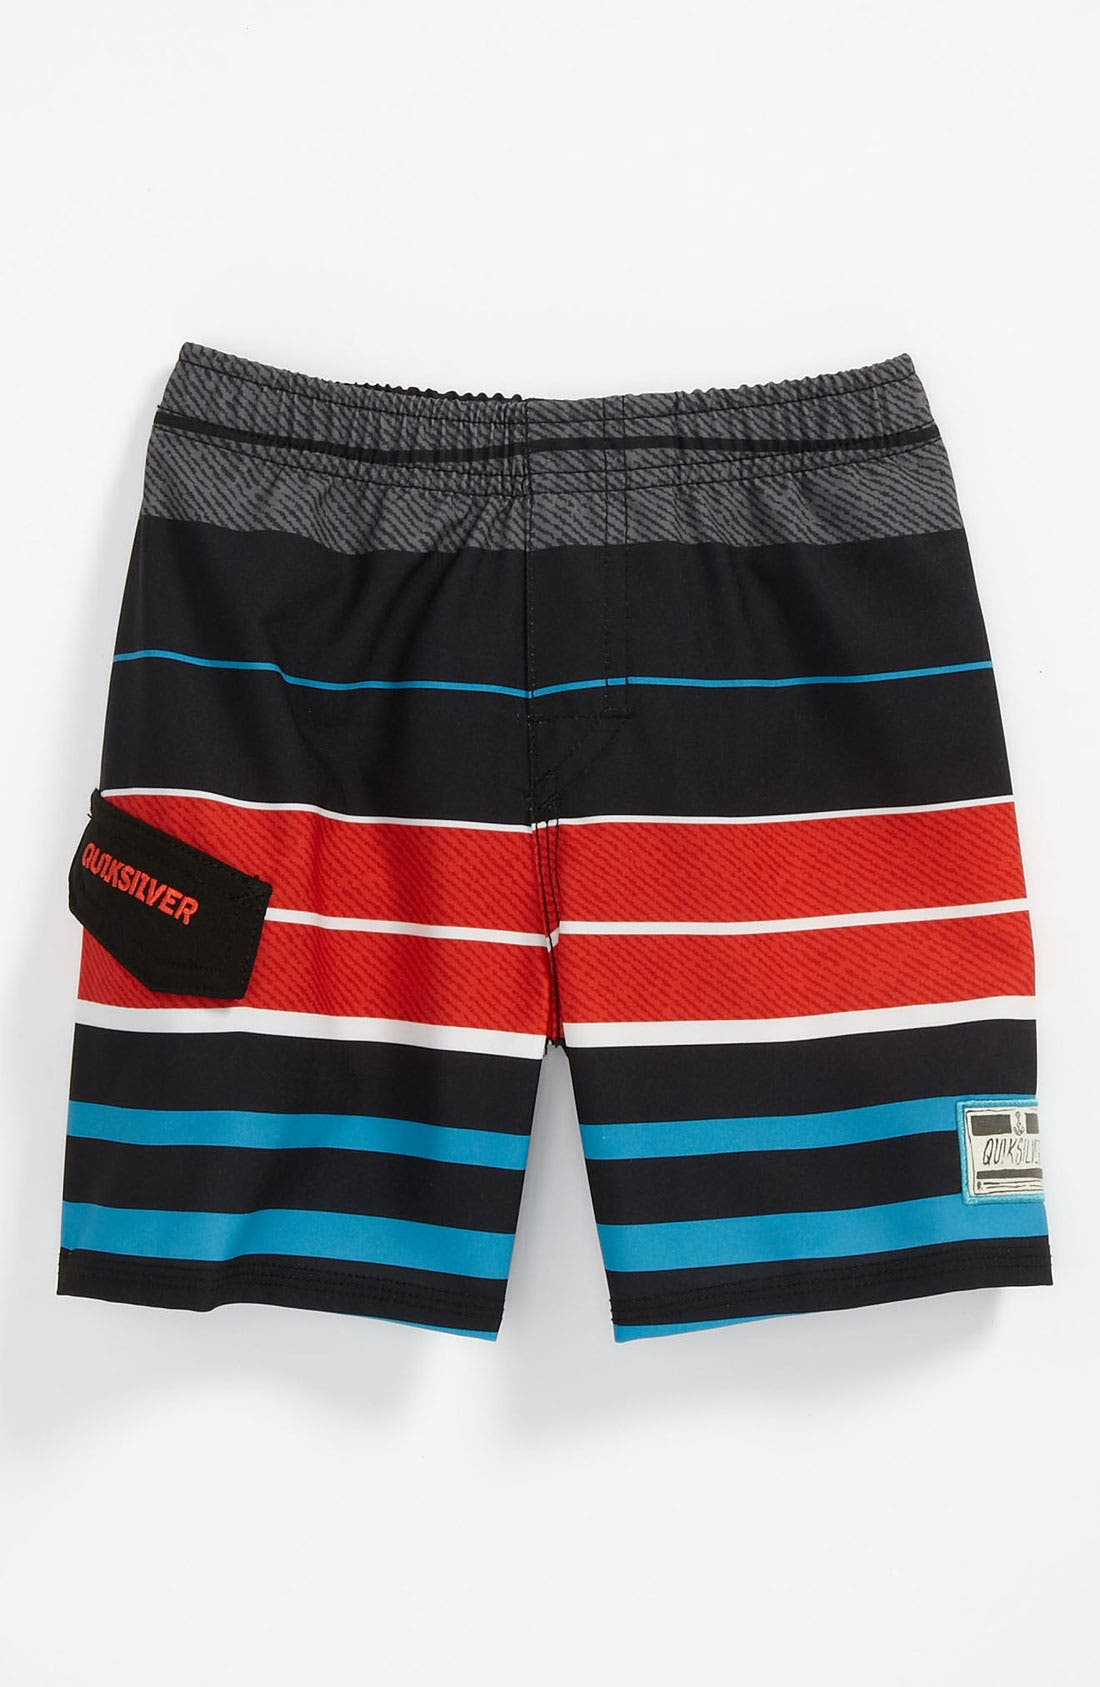 Alternate Image 1 Selected - Quiksilver 'Way Point' Volley Shorts (Toddler)